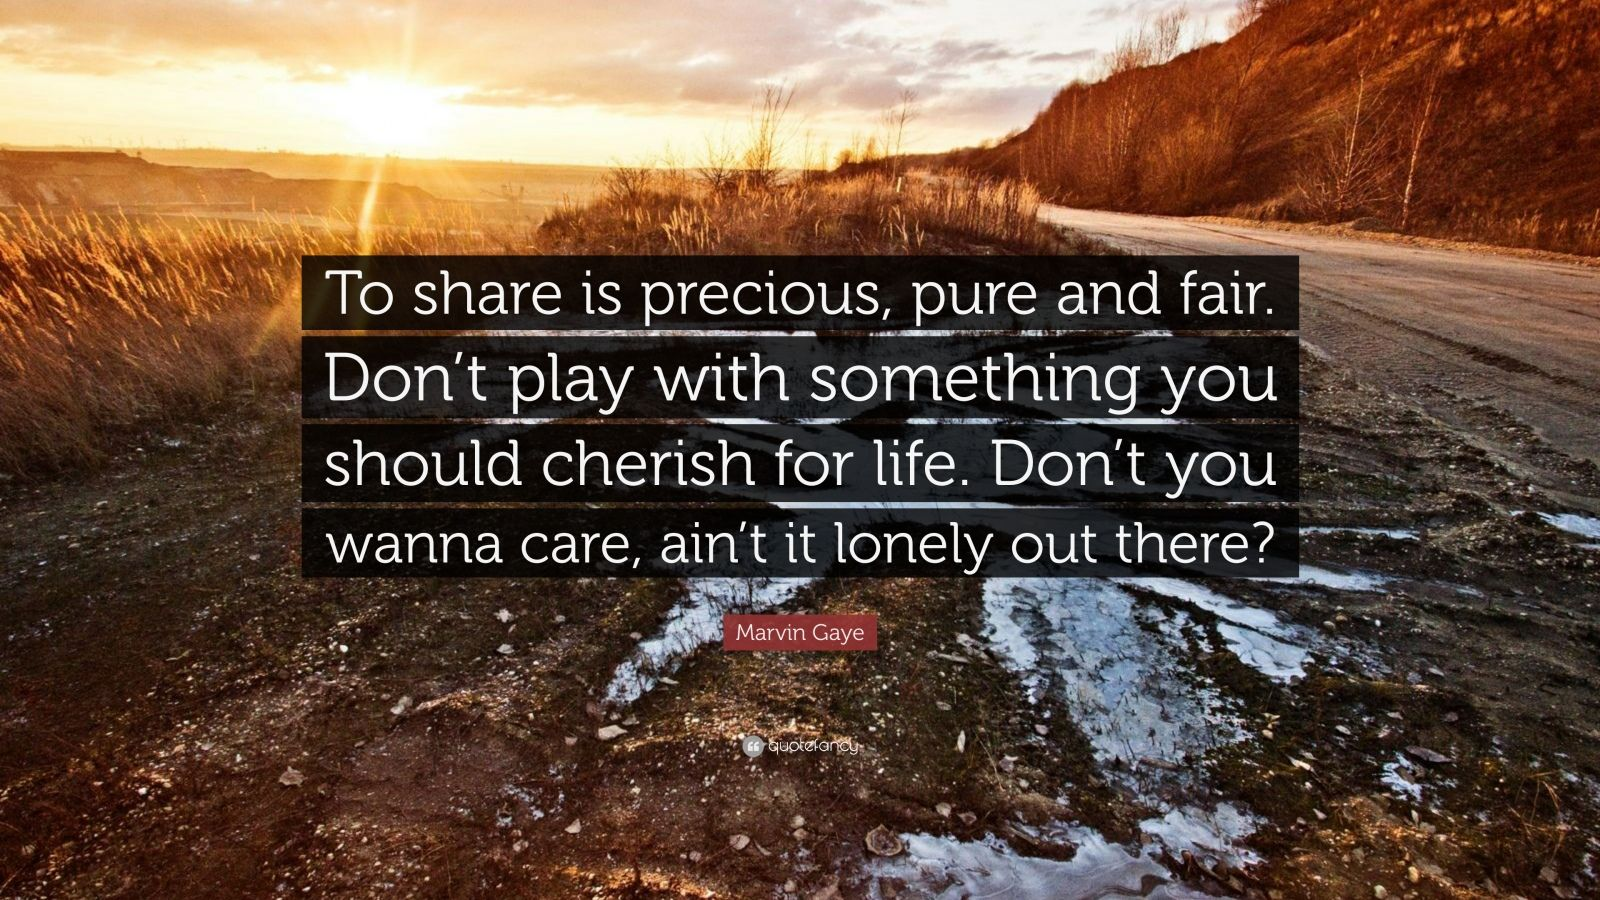 "Marvin Gaye Quote: ""To share is precious, pure and fair. Don't play with something you should cherish for life. Don't you wanna care, ain't it lonely out there?"""